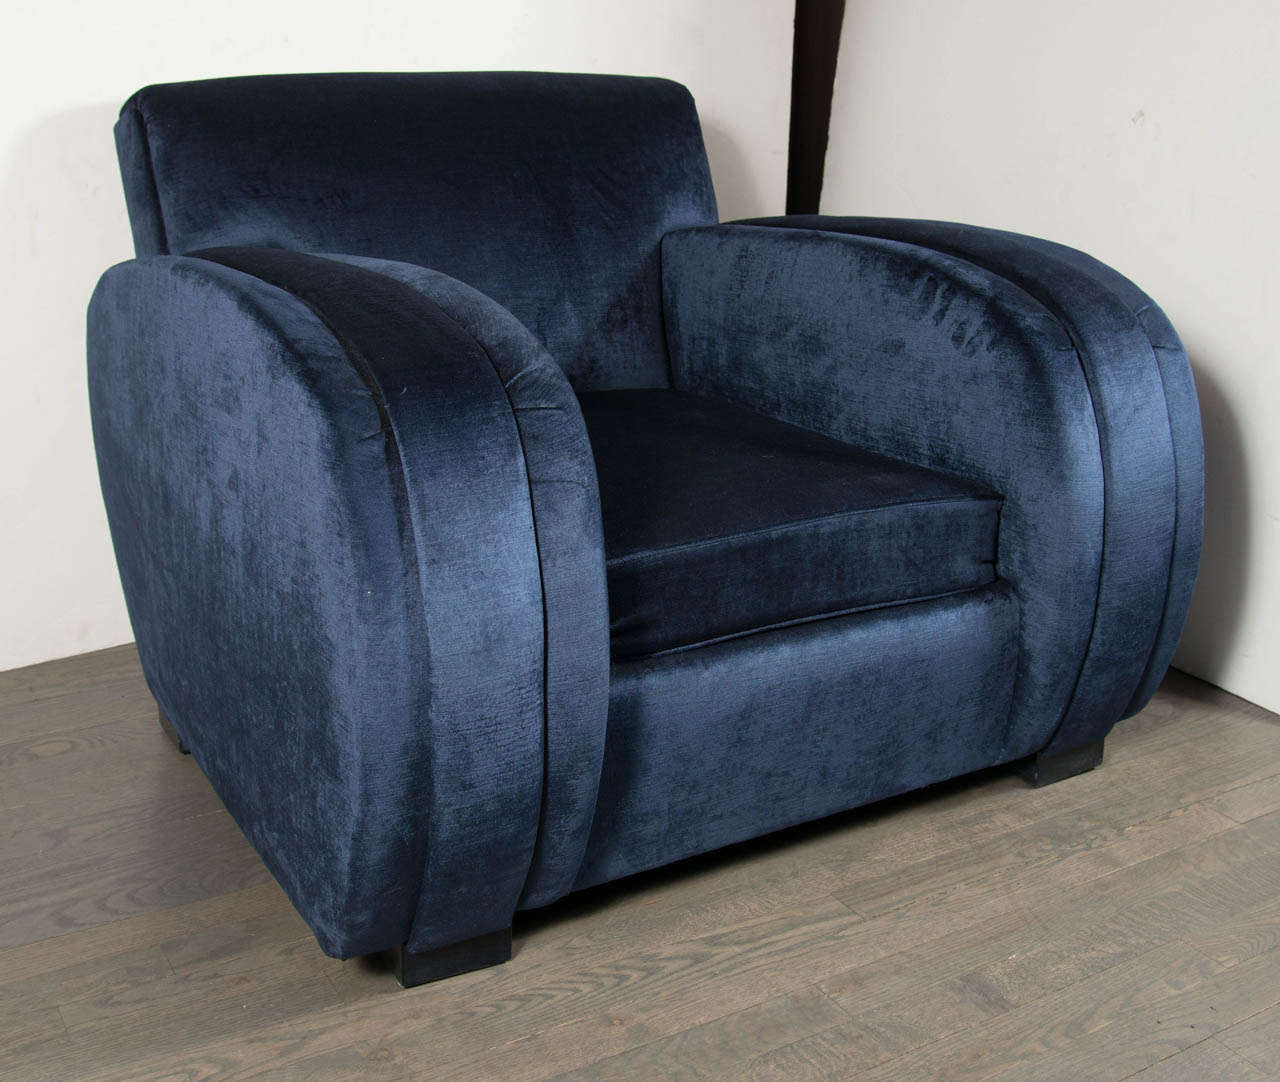 Art Deco Streamlined Club Chair in Sapphire Blue Velvet Upholstery 3